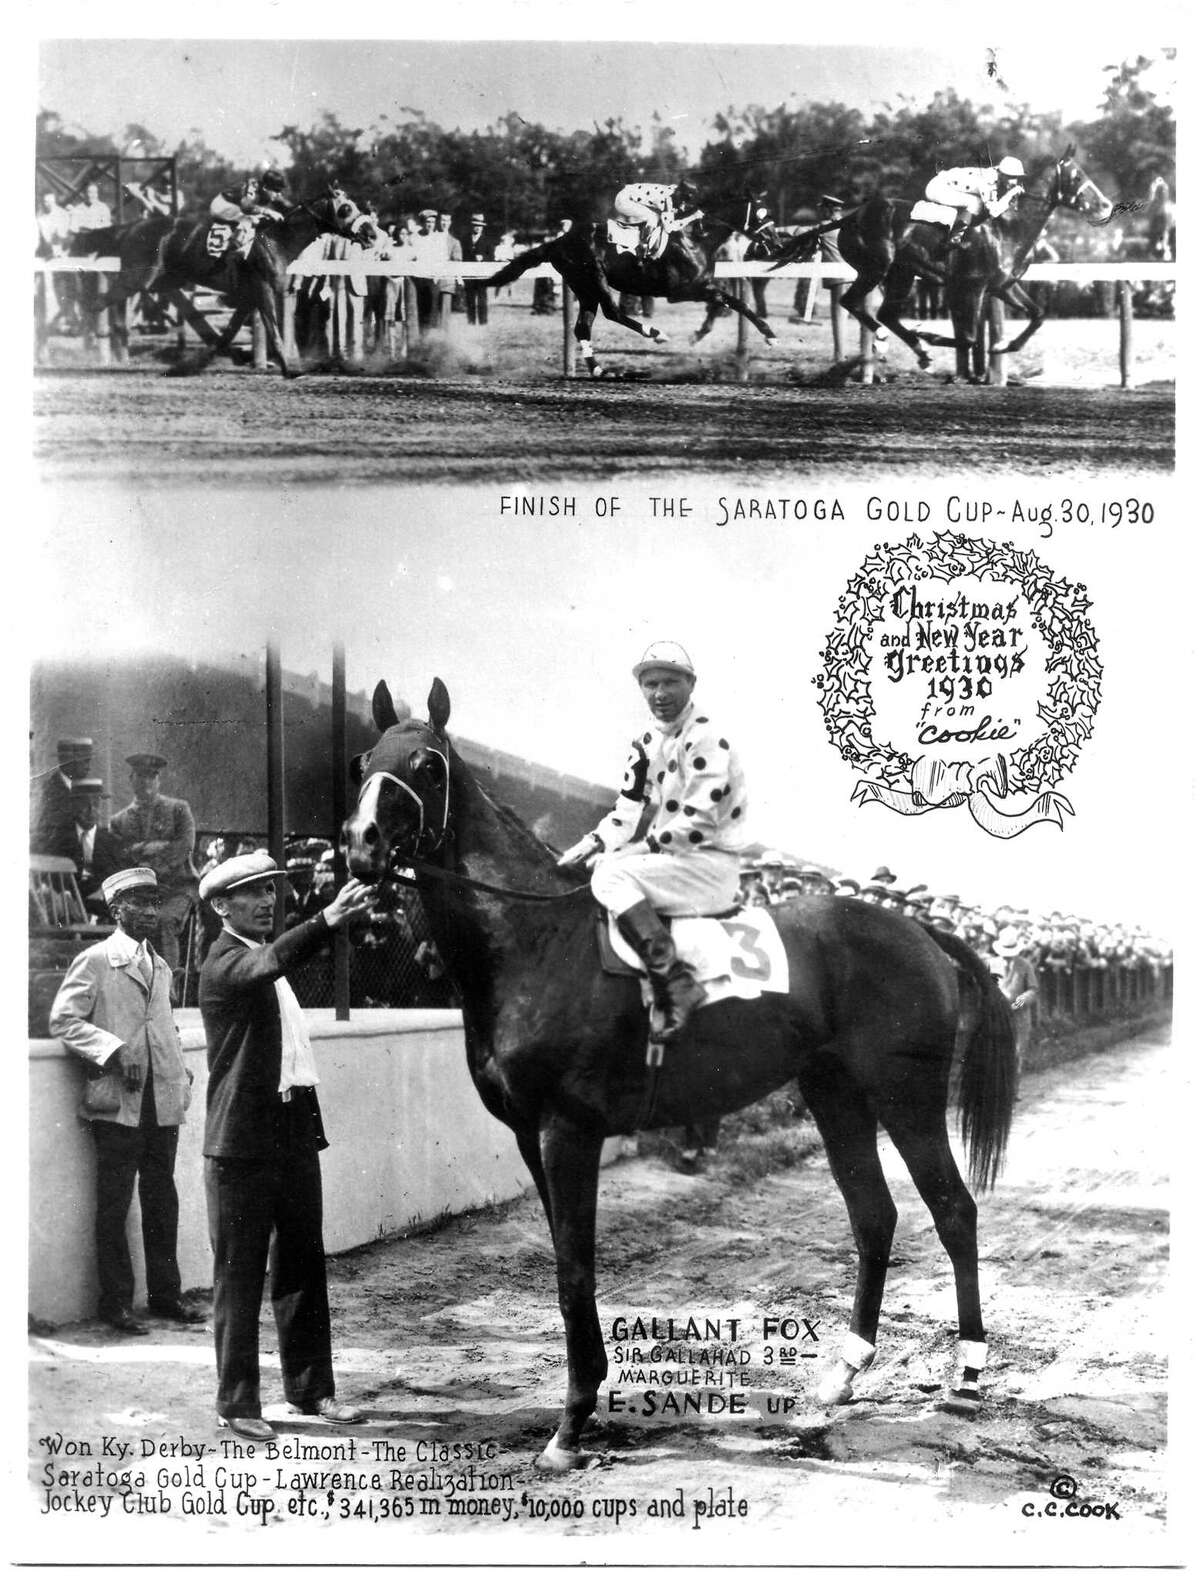 In 1930, Gallant Fox won the Triple Crown, but fell to Jim Dandy in the Travers. Photo courtesy of Museum of Racing, Saratoga. 1930 Triple Crown Winner, Gallant Fox, in a Christmas card from the same year.